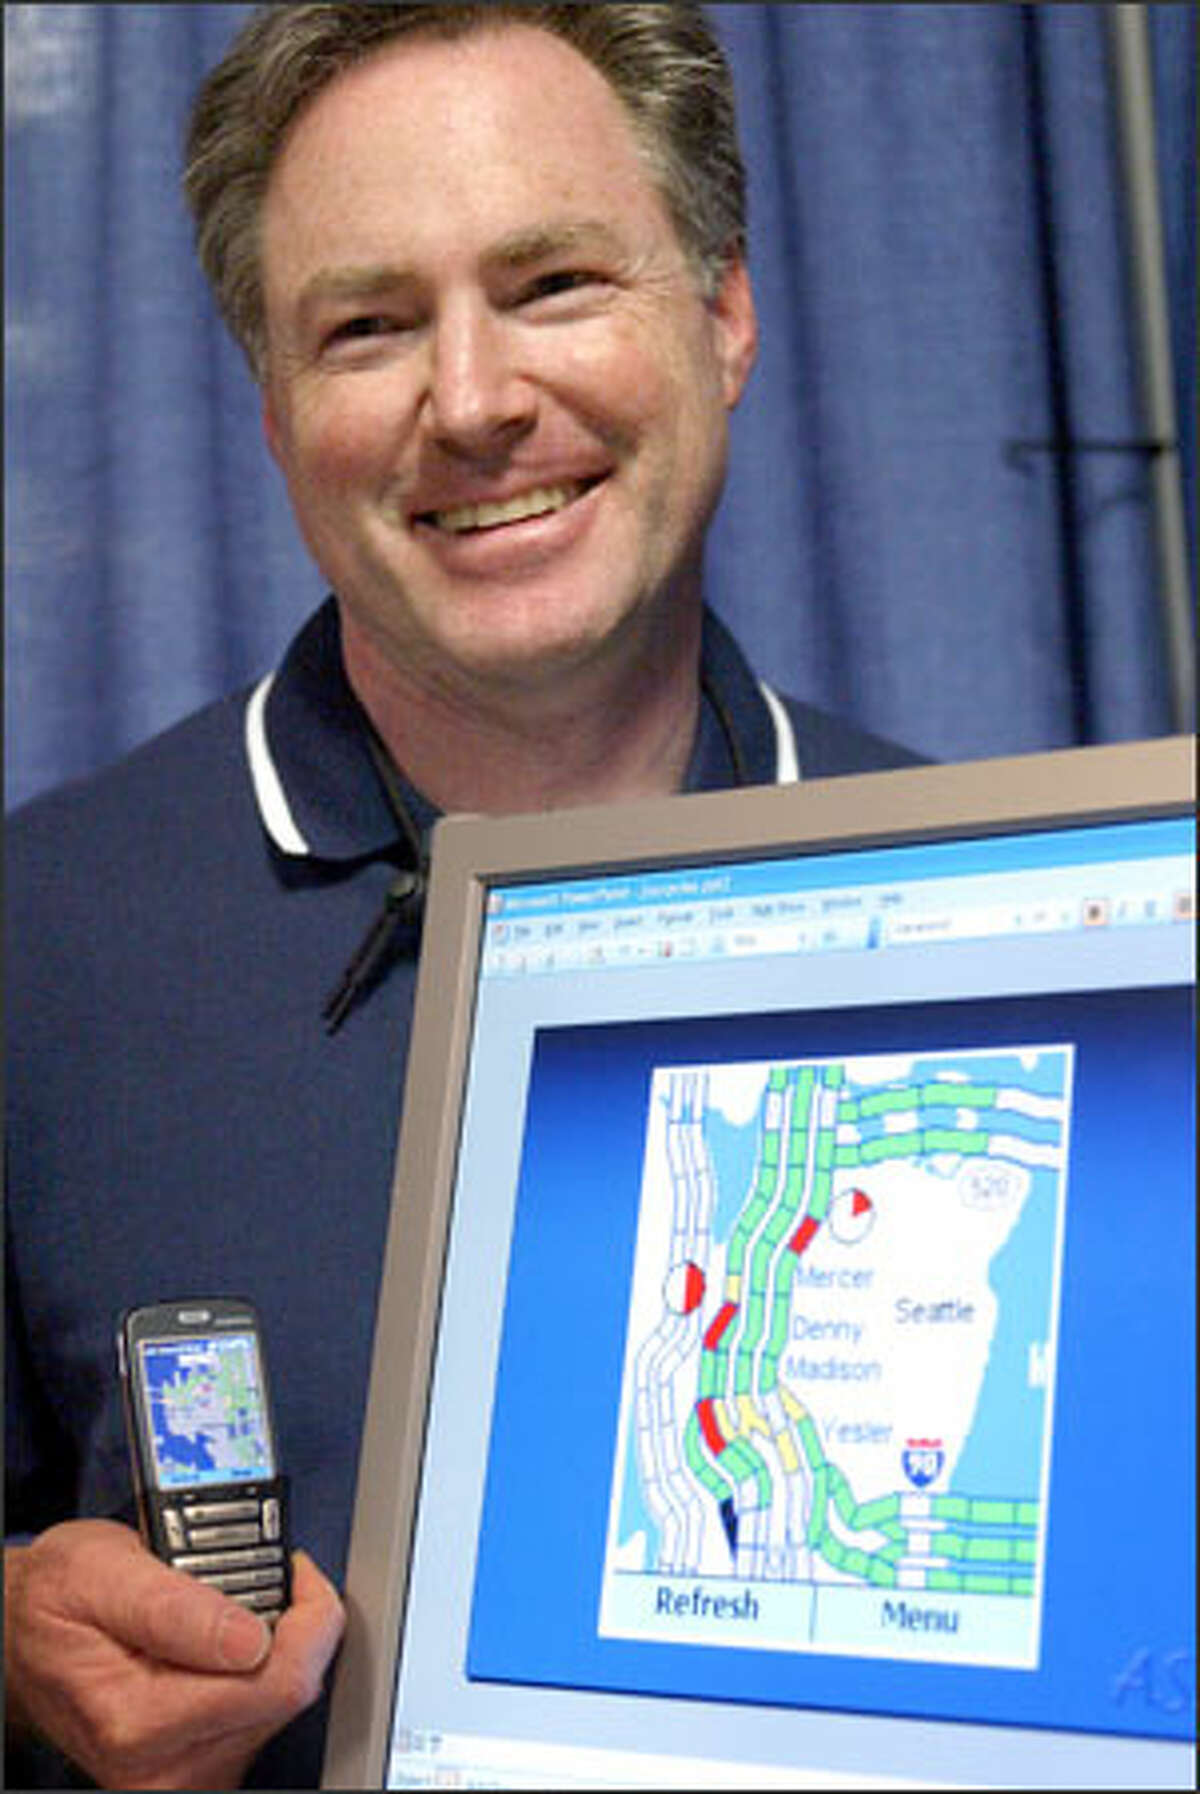 Microsoft researcher Eric Horvitz shows a project that indicates traffic problems on cell phones. The computer program, which also predicts upcoming traffic conditions, already is used by Microsoft employees.